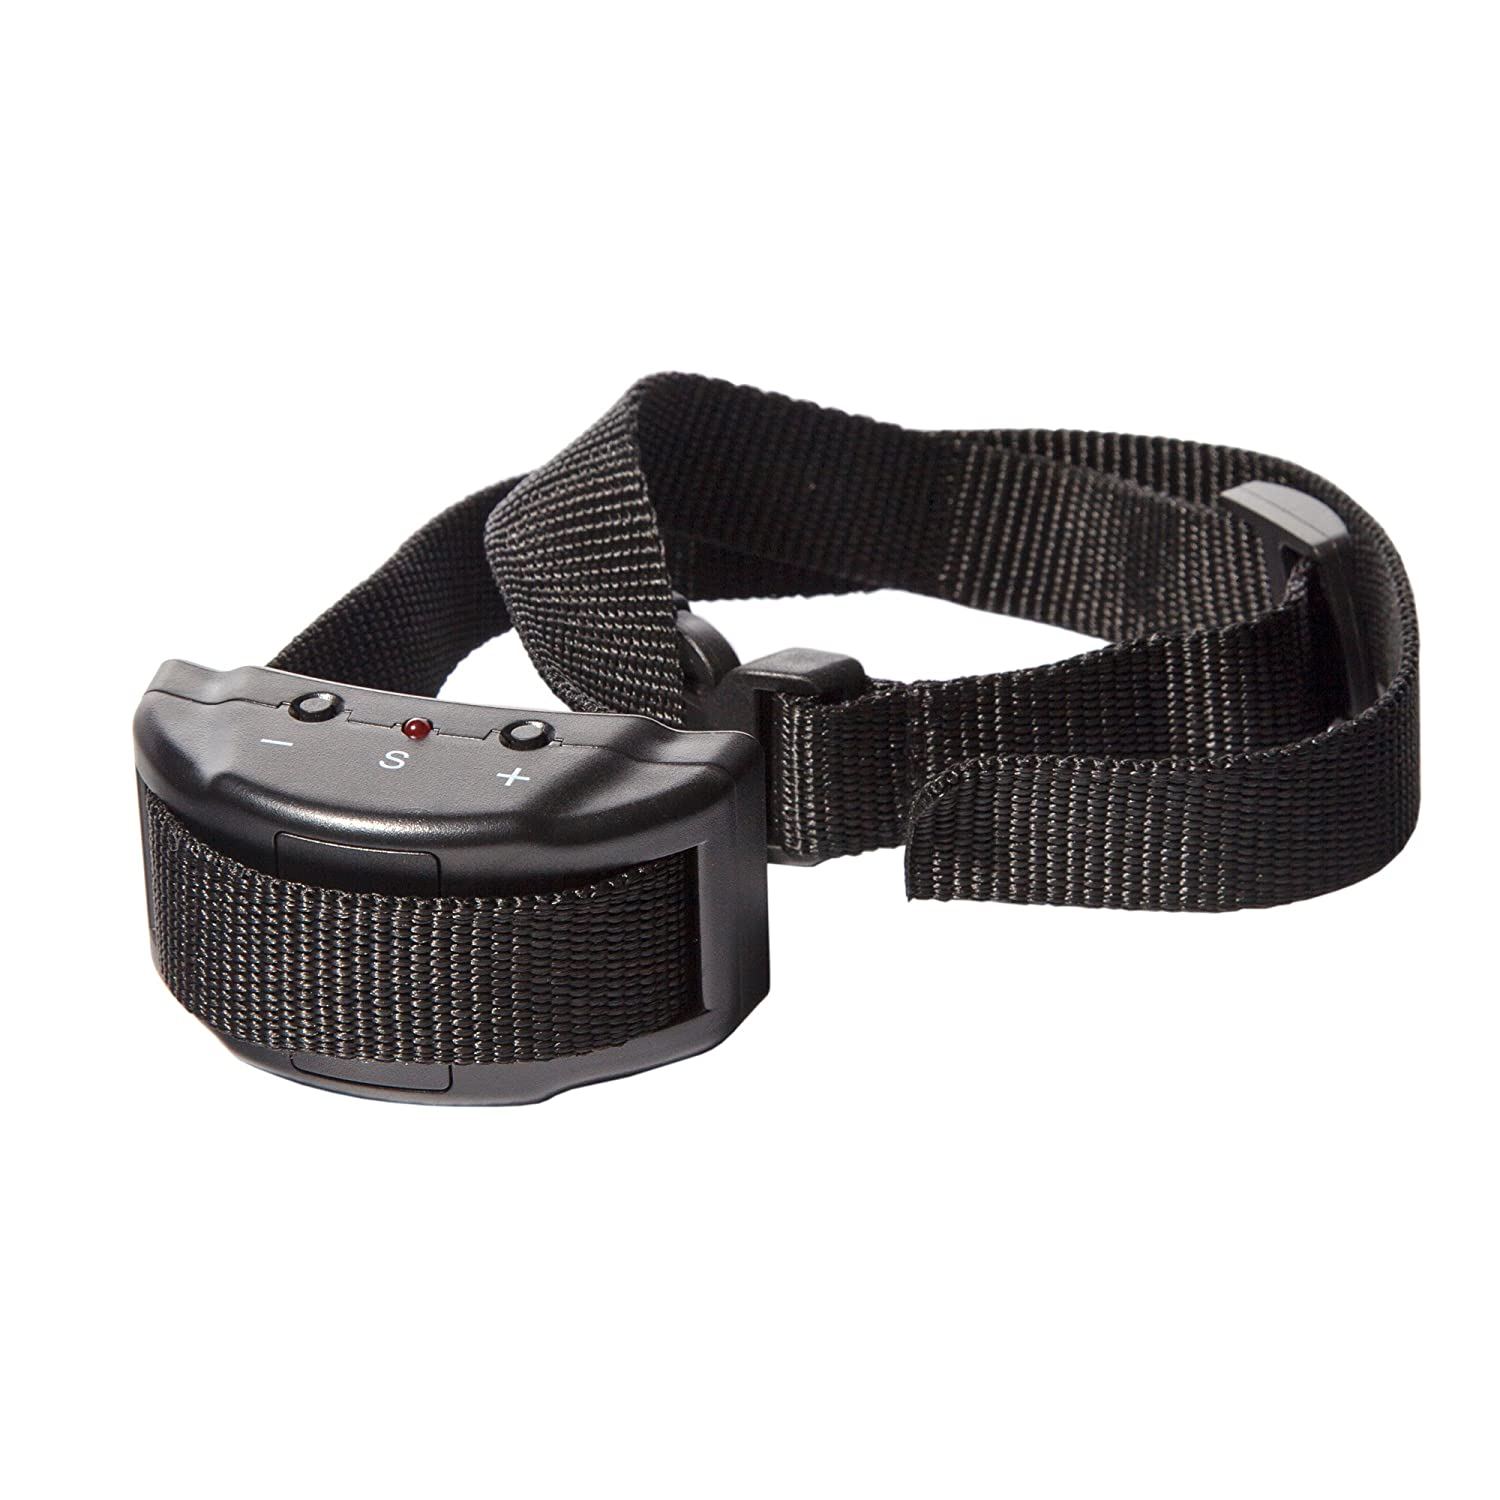 Kofohon KP853(UPDATED VERSION) Anti No Barking by Beeper Shock Dog Collar 7 Levels Of Sensitivity Adjustment Pet Training and Control Collar without Any Pain and Harm No Bark Shock Dog Control